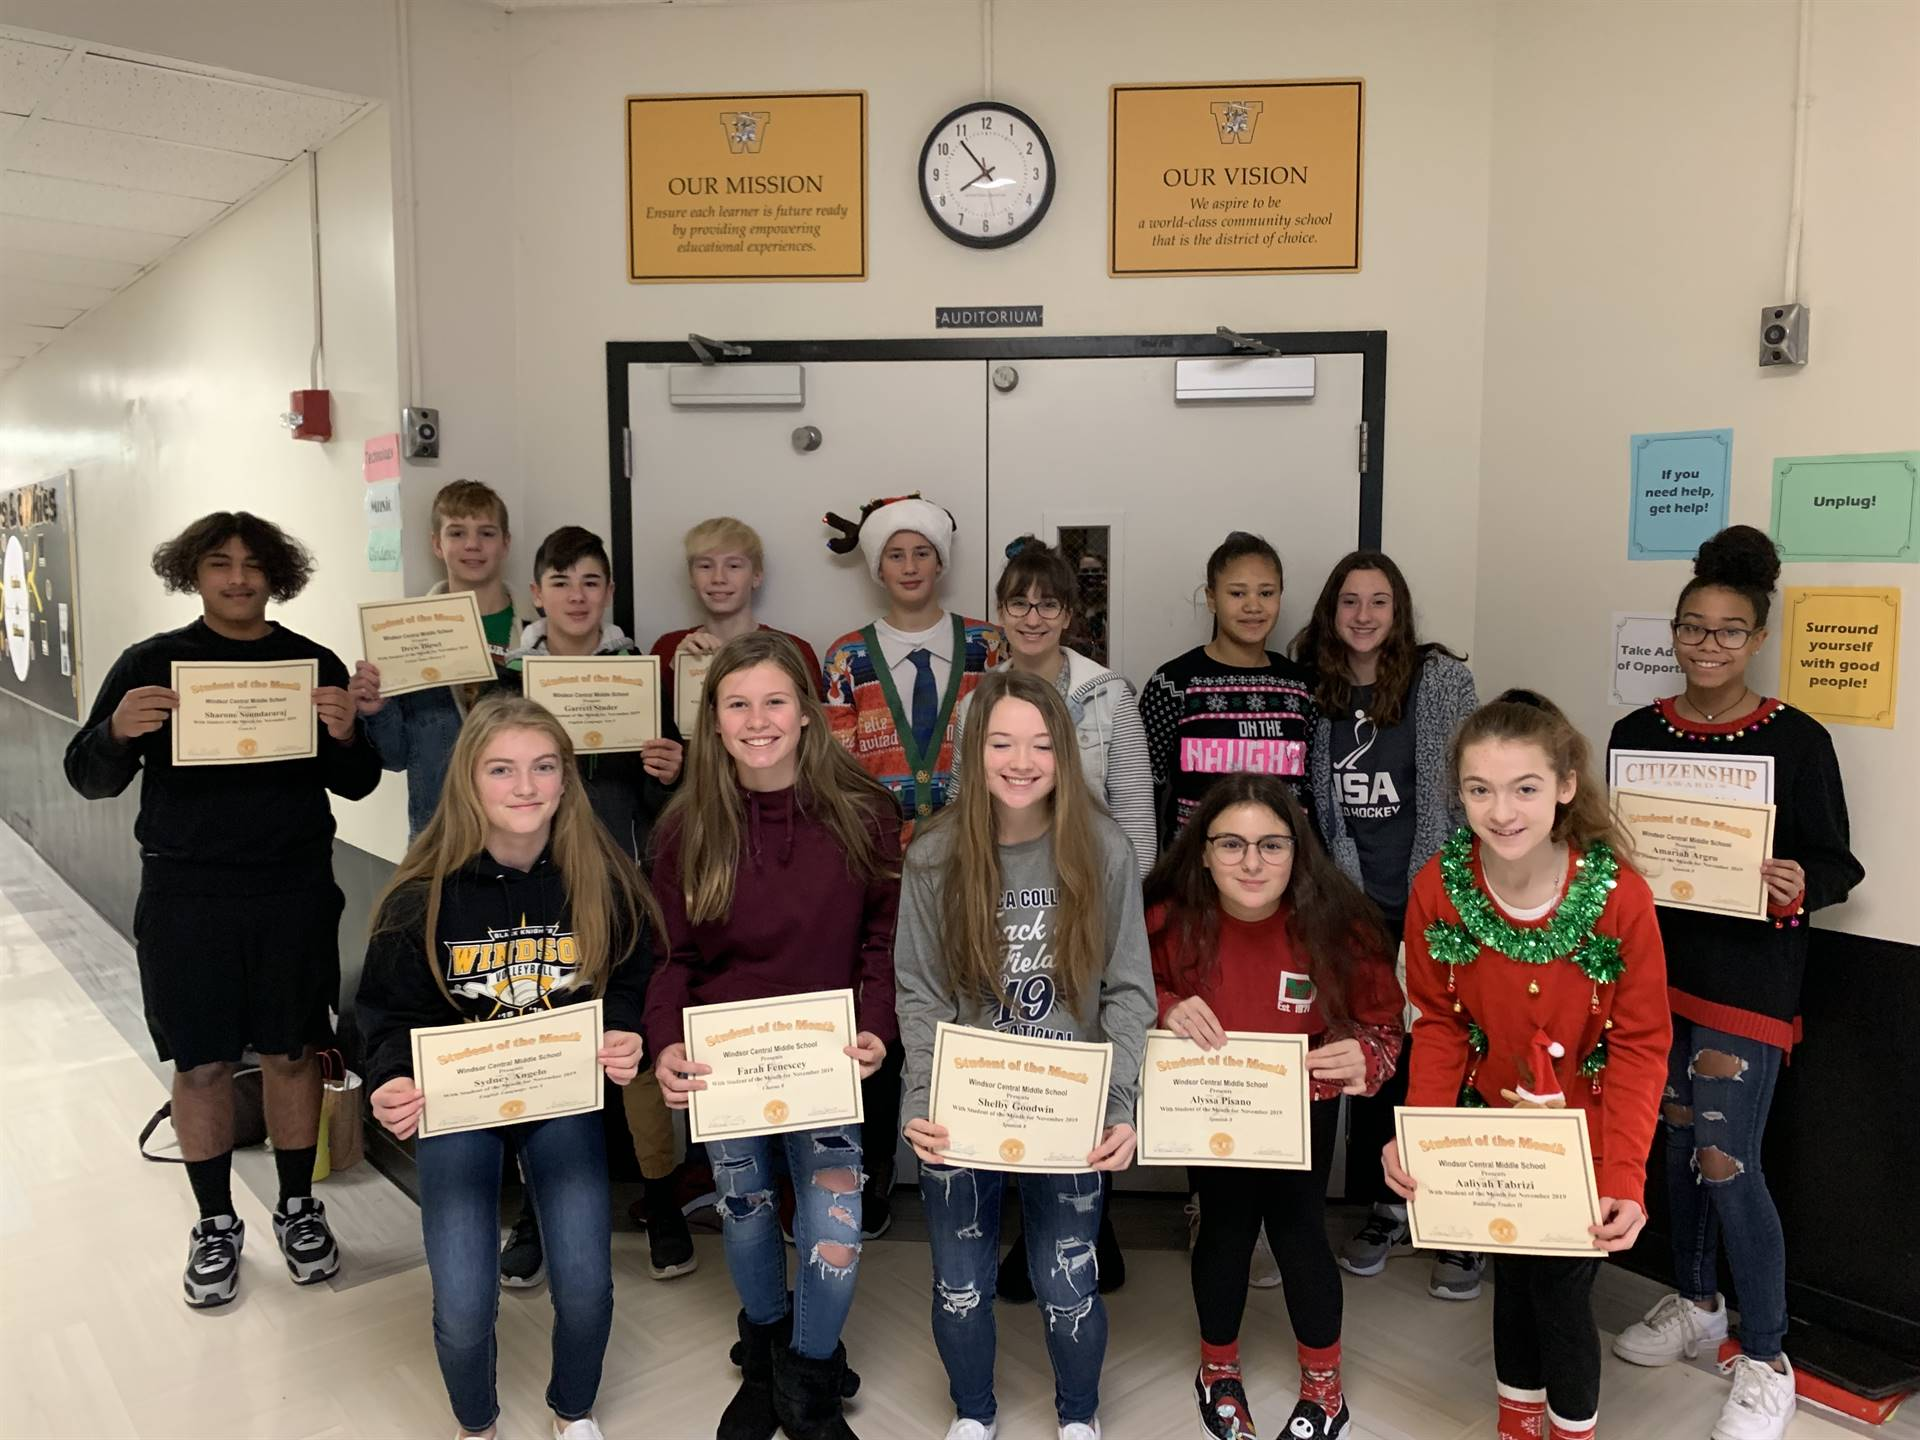 Two rows of 8th grade students holding certificates in a hallway